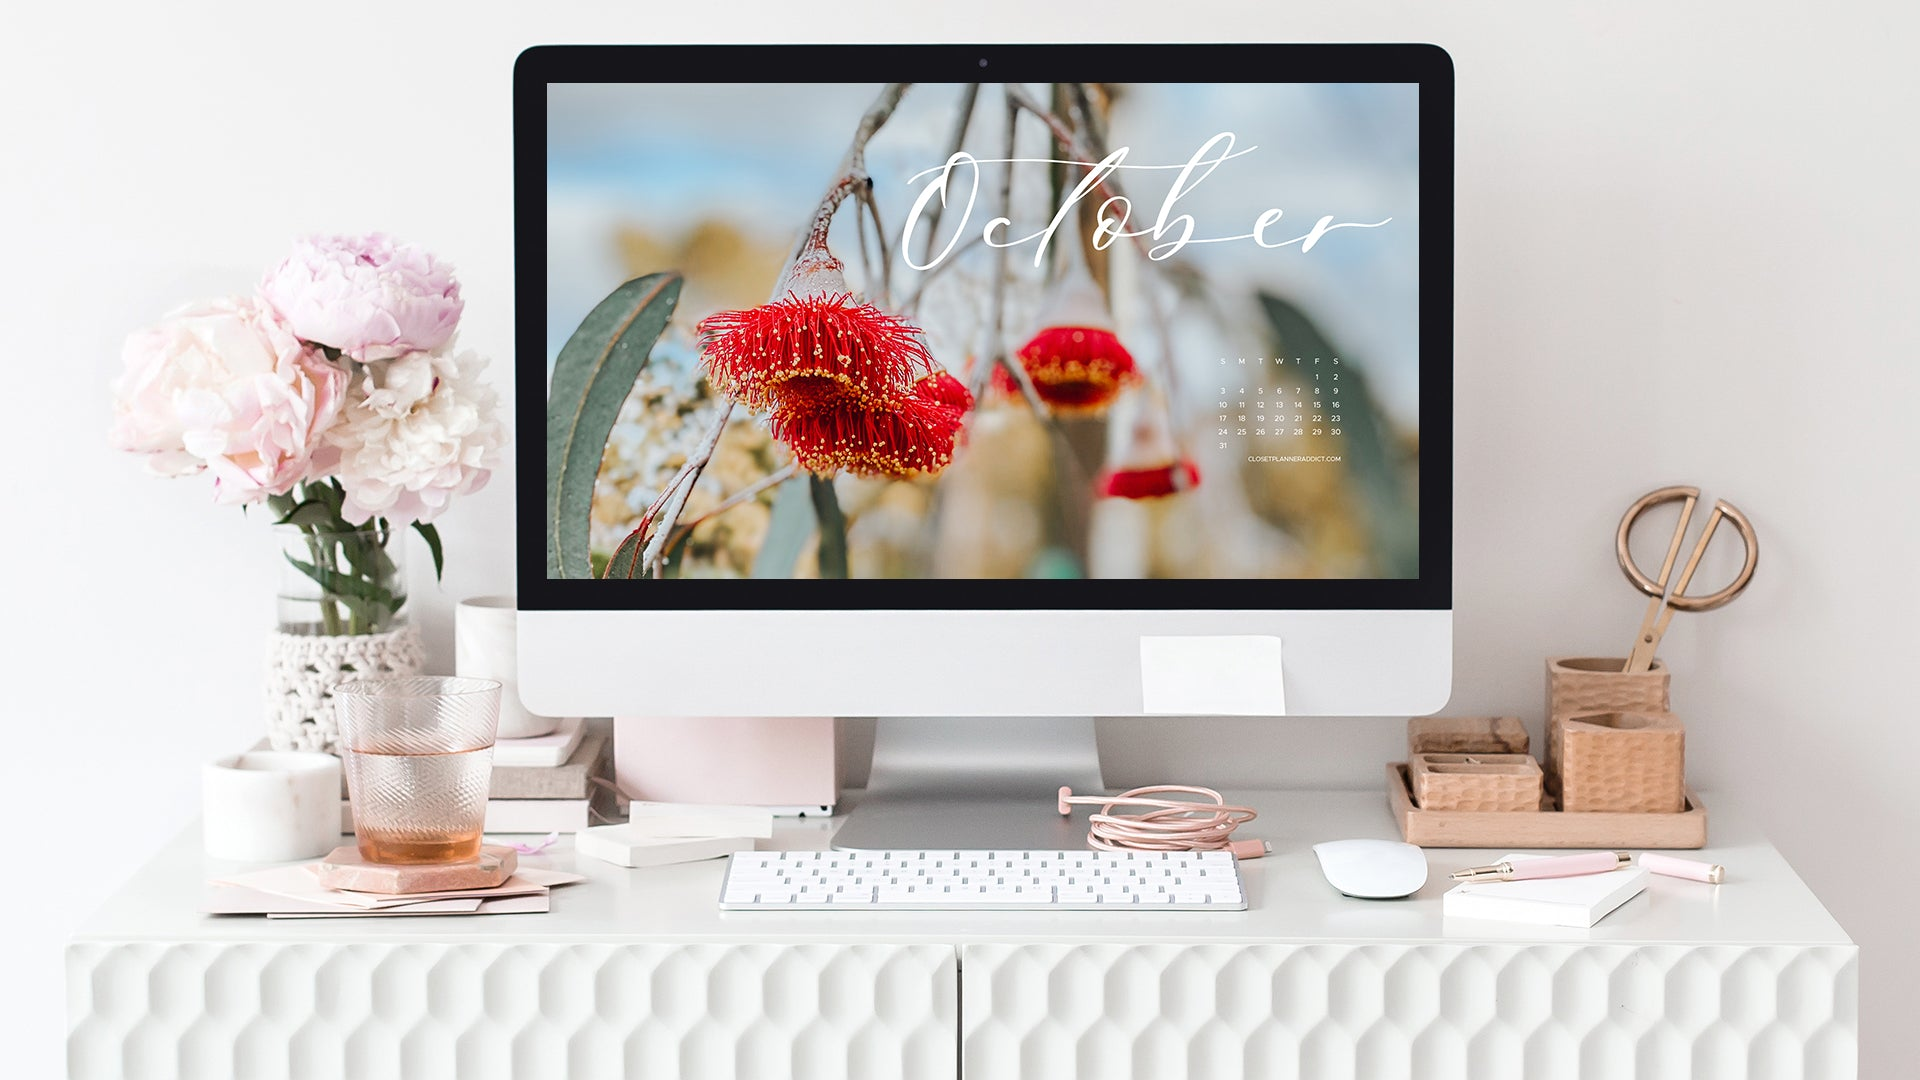 Free Download October 2021 Wallpapers by Closet Planner Addict